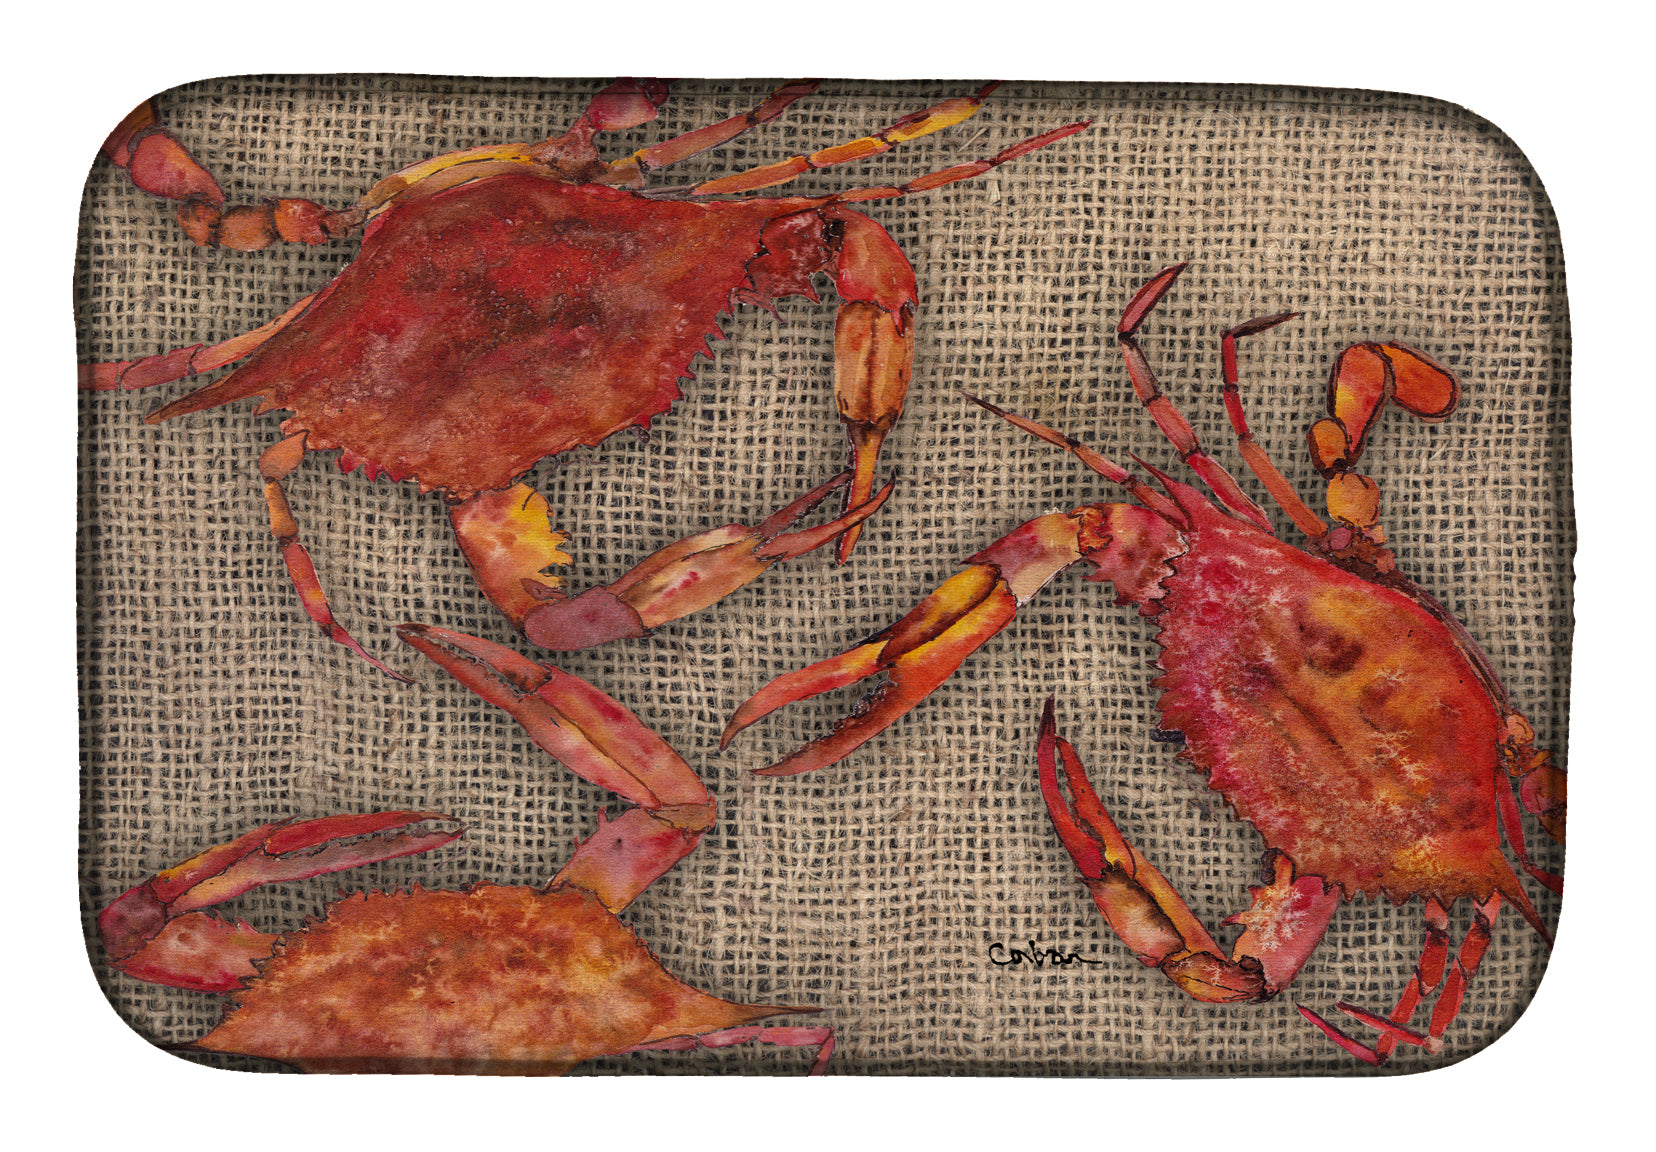 Cooked Crabs on Faux Burlap Dish Drying Mat 8742DDM by Caroline's Treasures